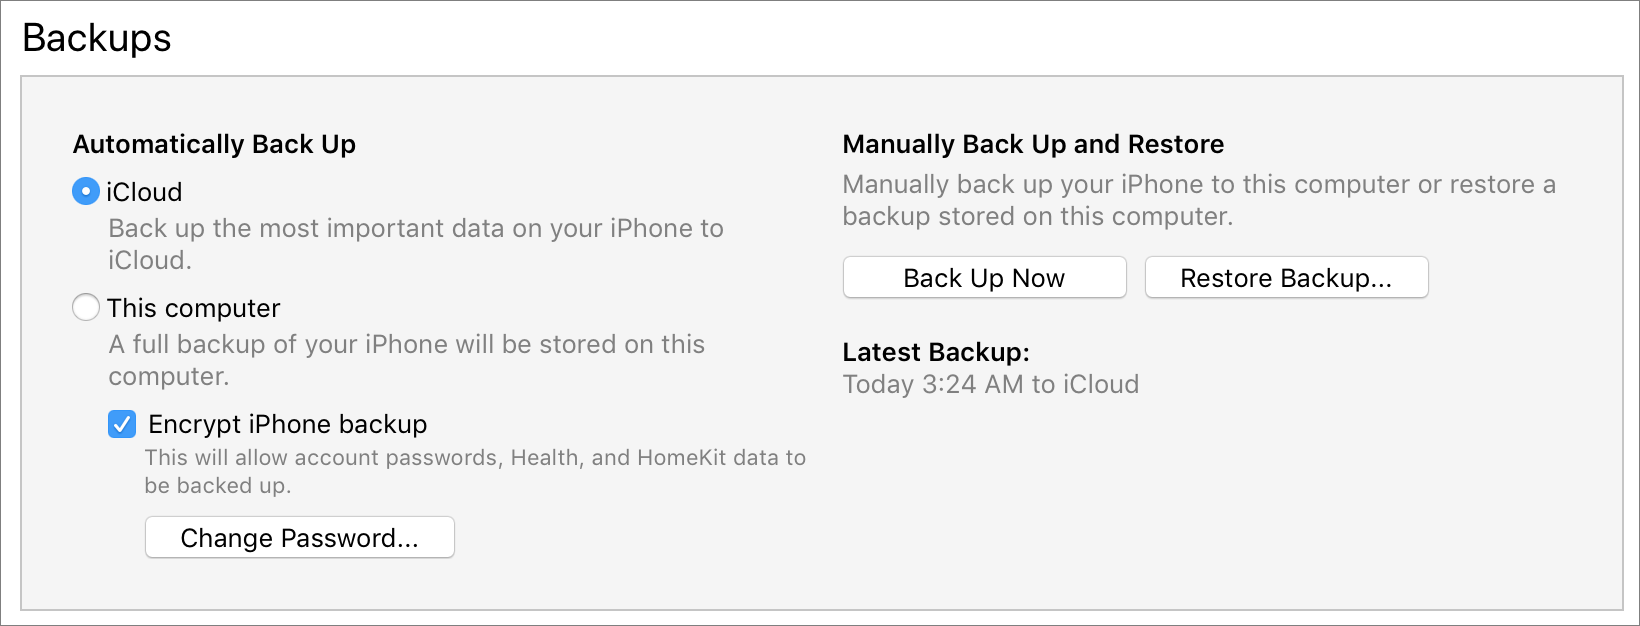 iTunes-Backups-section